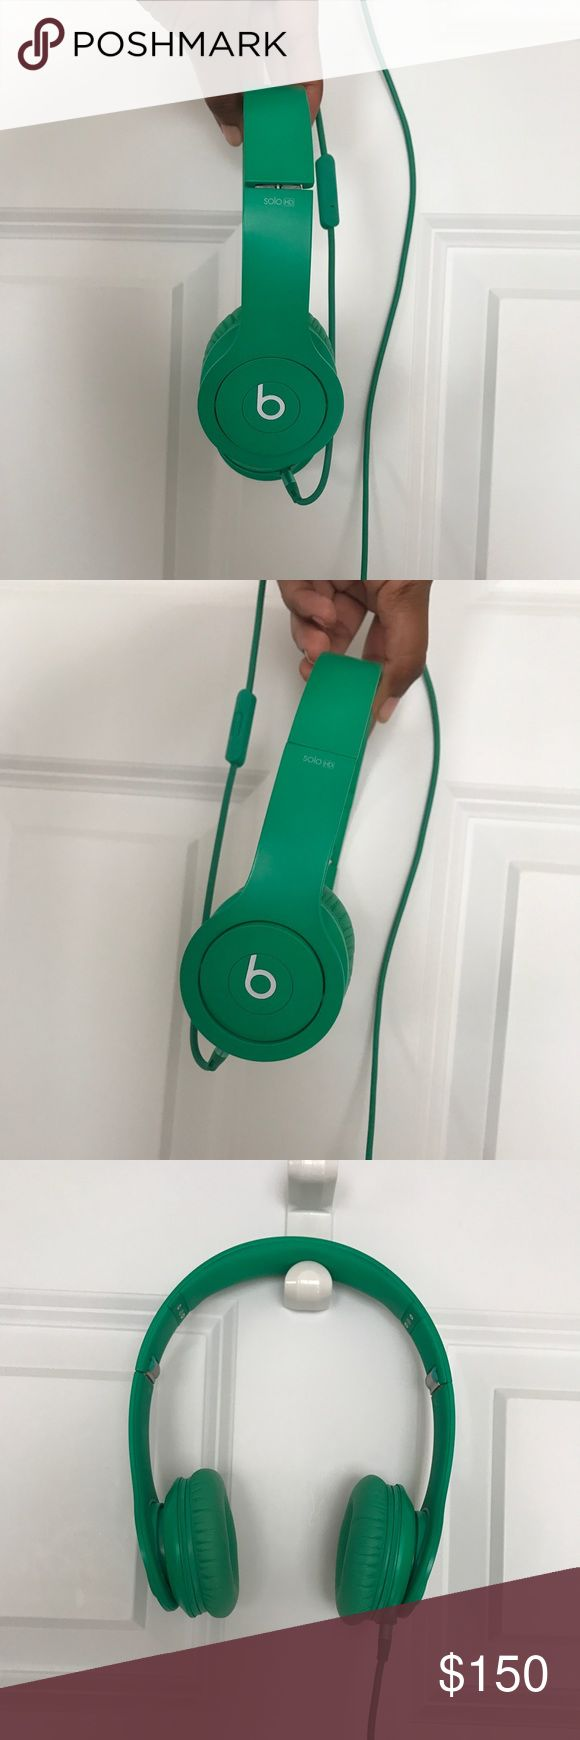 """Beats Solo 2 HD Headphones These Beats Solo 2 HD headphones are perfect for everyday use. They feature a Kelly green color with a volume adjuster/microphone and headphone jack connection. These headphones are in very good condition, used lightly, but everything works perfectly. They also feature the Beats """"b"""" logo on both sides. Cushions for the ear and head are super  snug comfortable. They stay on we'll even with movement. The strap at the top is adjustable on either sides. Size: One Size…"""